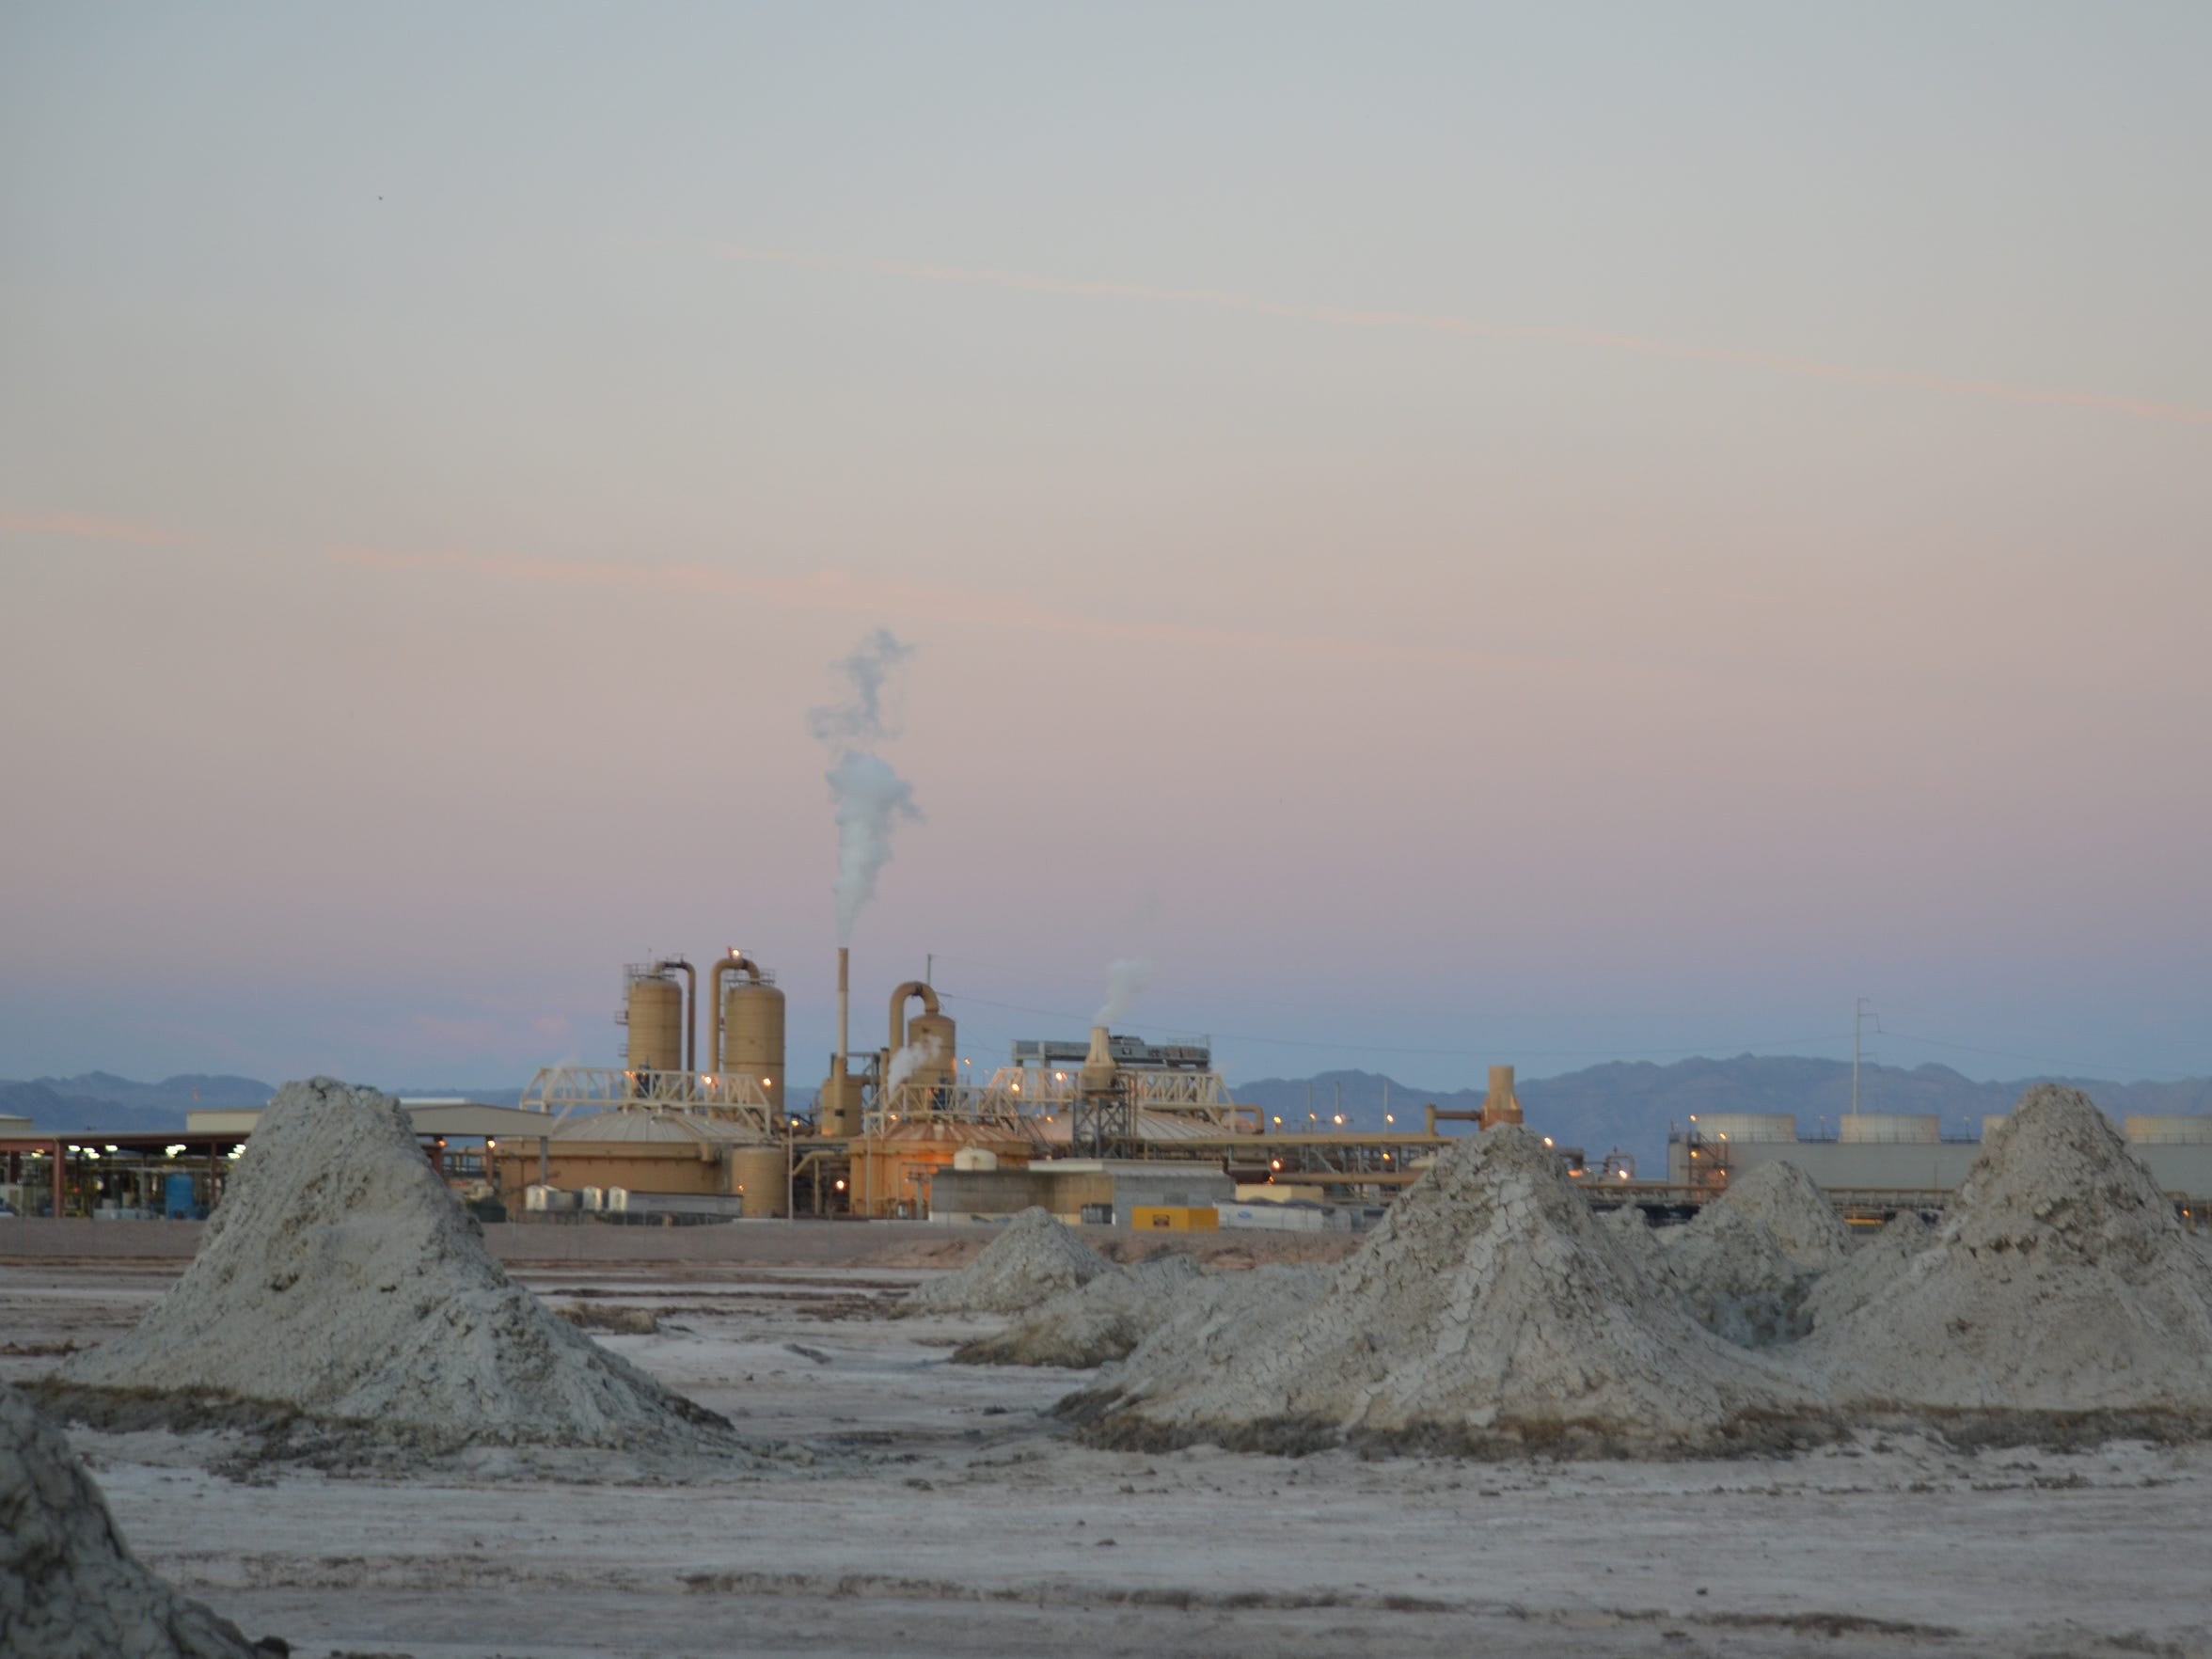 An Imperial Valley geothermal plant, seen from the mud volcanoes and mud pots by the shore of the Salton Sea.